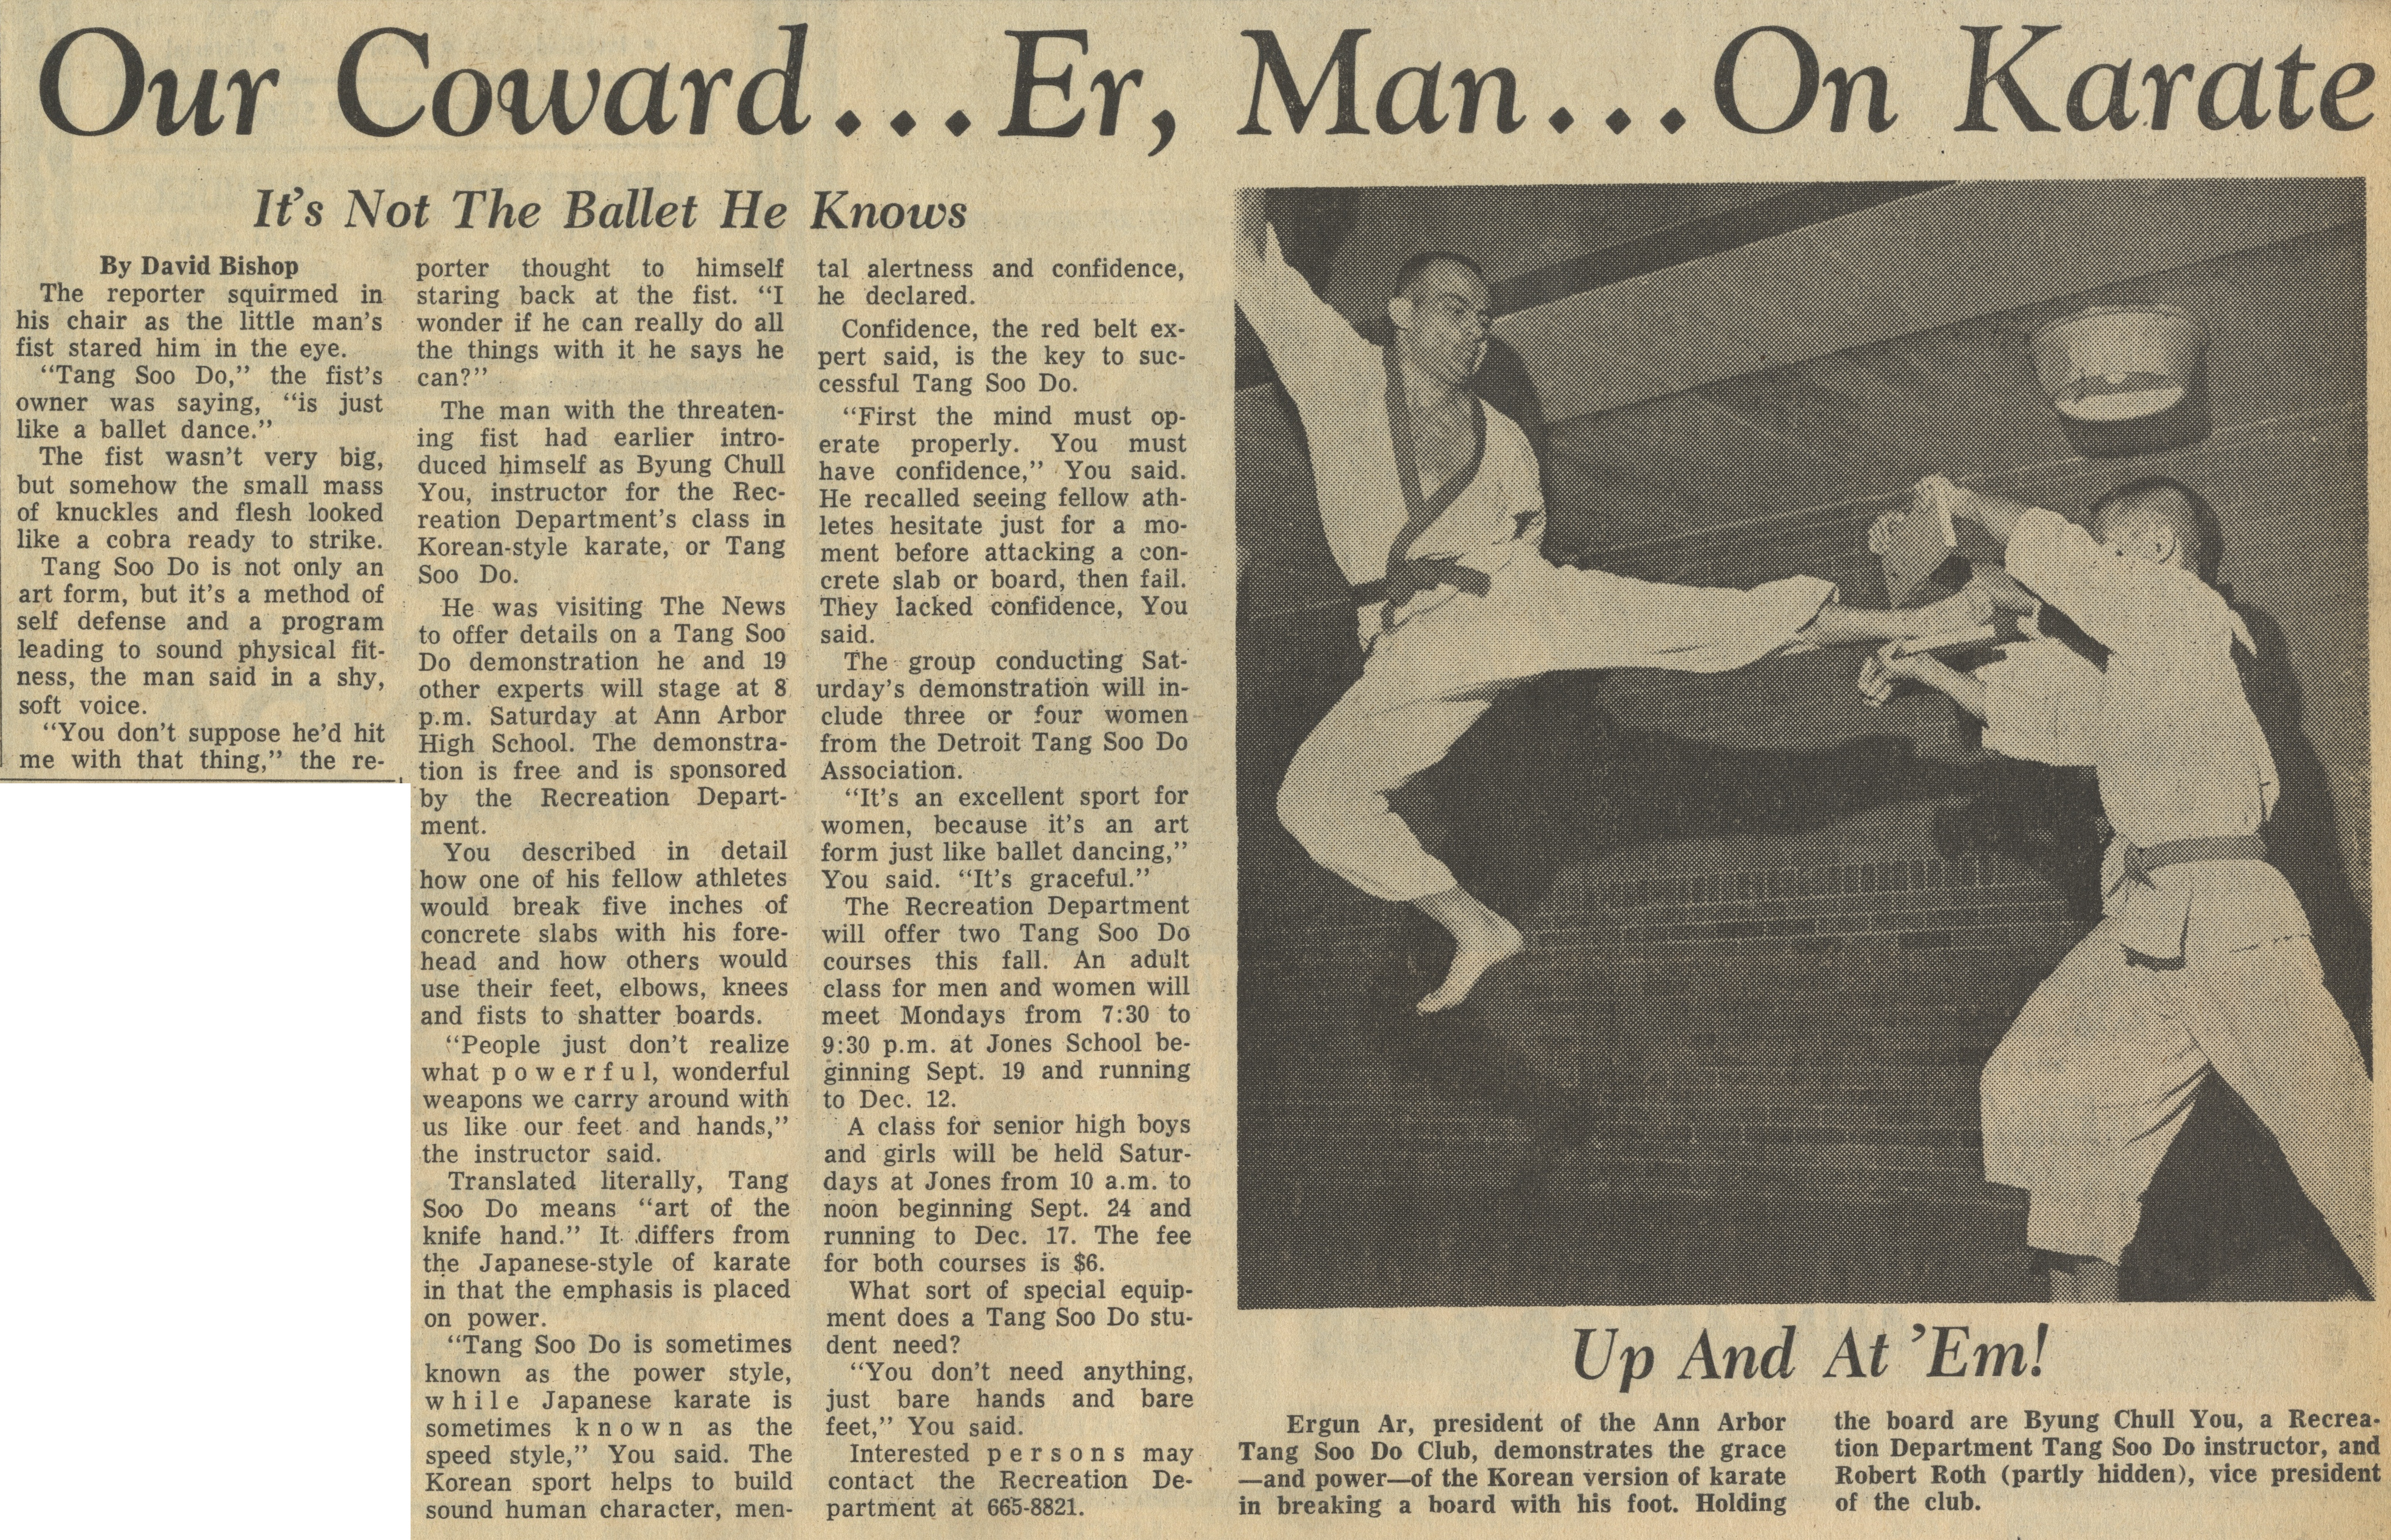 Our Coward...Er, Man....On Karate image